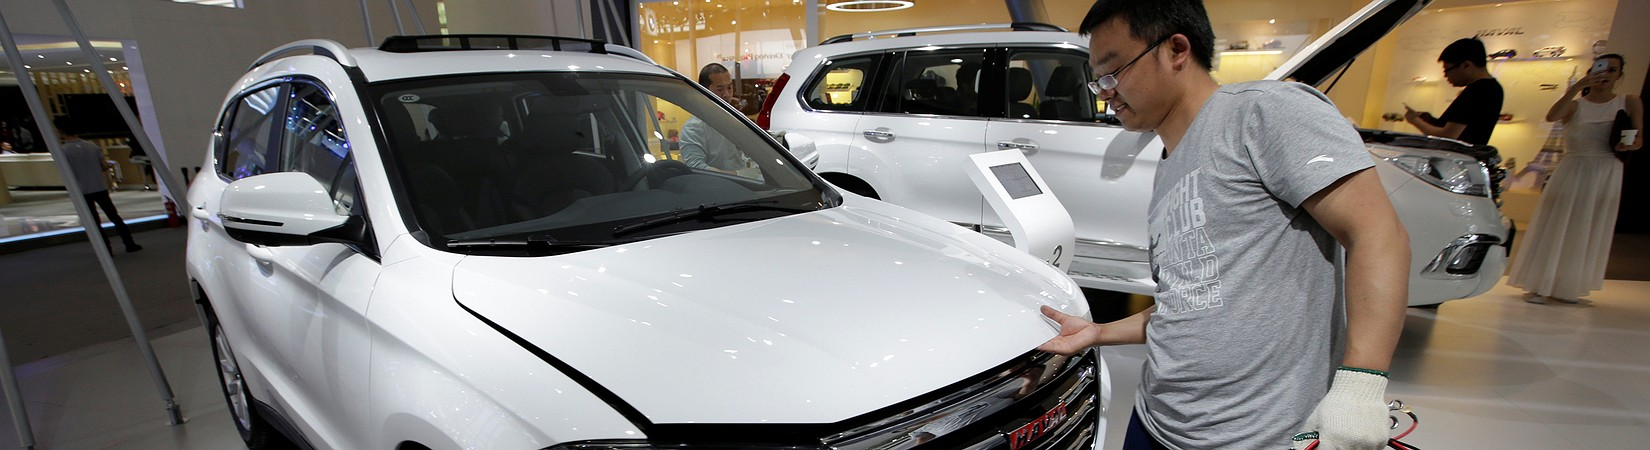 Great Wall could fill the void in Mexico left by Ford, Carrier